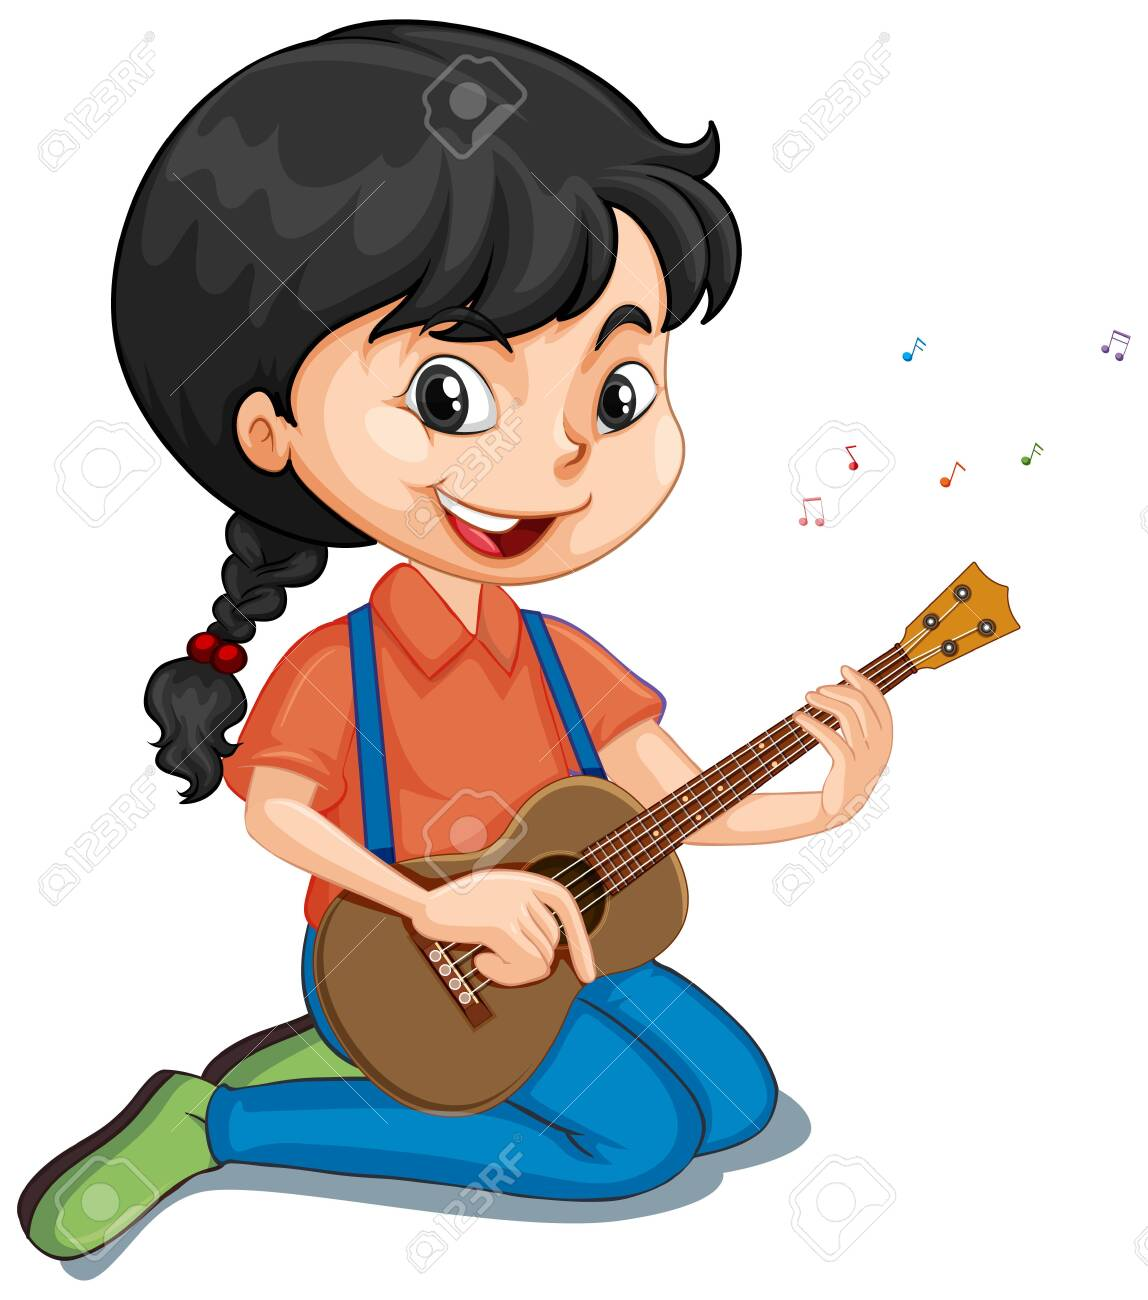 Girl playing guitar on isolated background illustration - 137360531